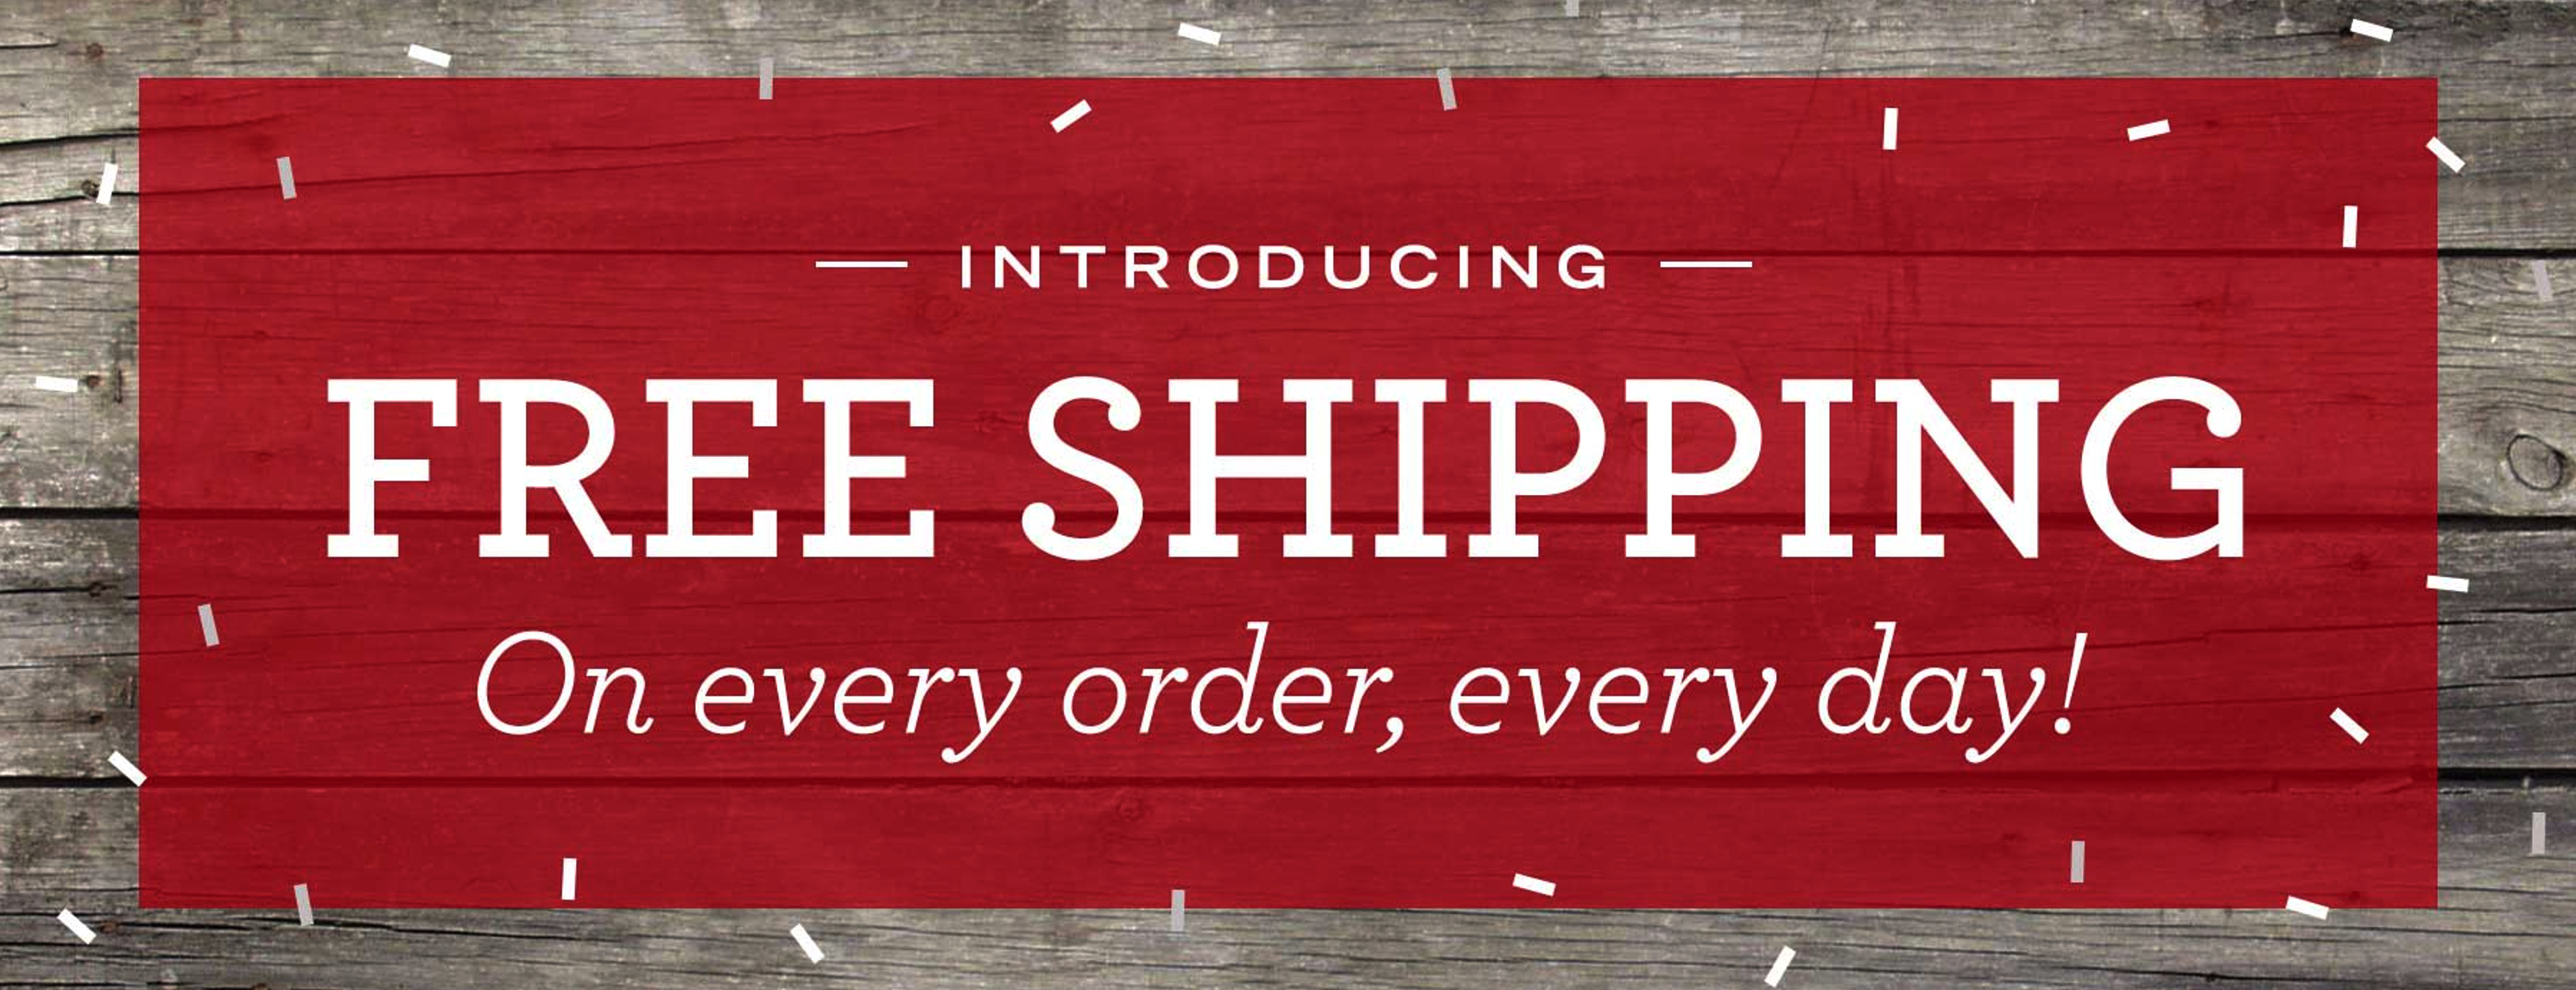 free-shipping-everyday-.jpg